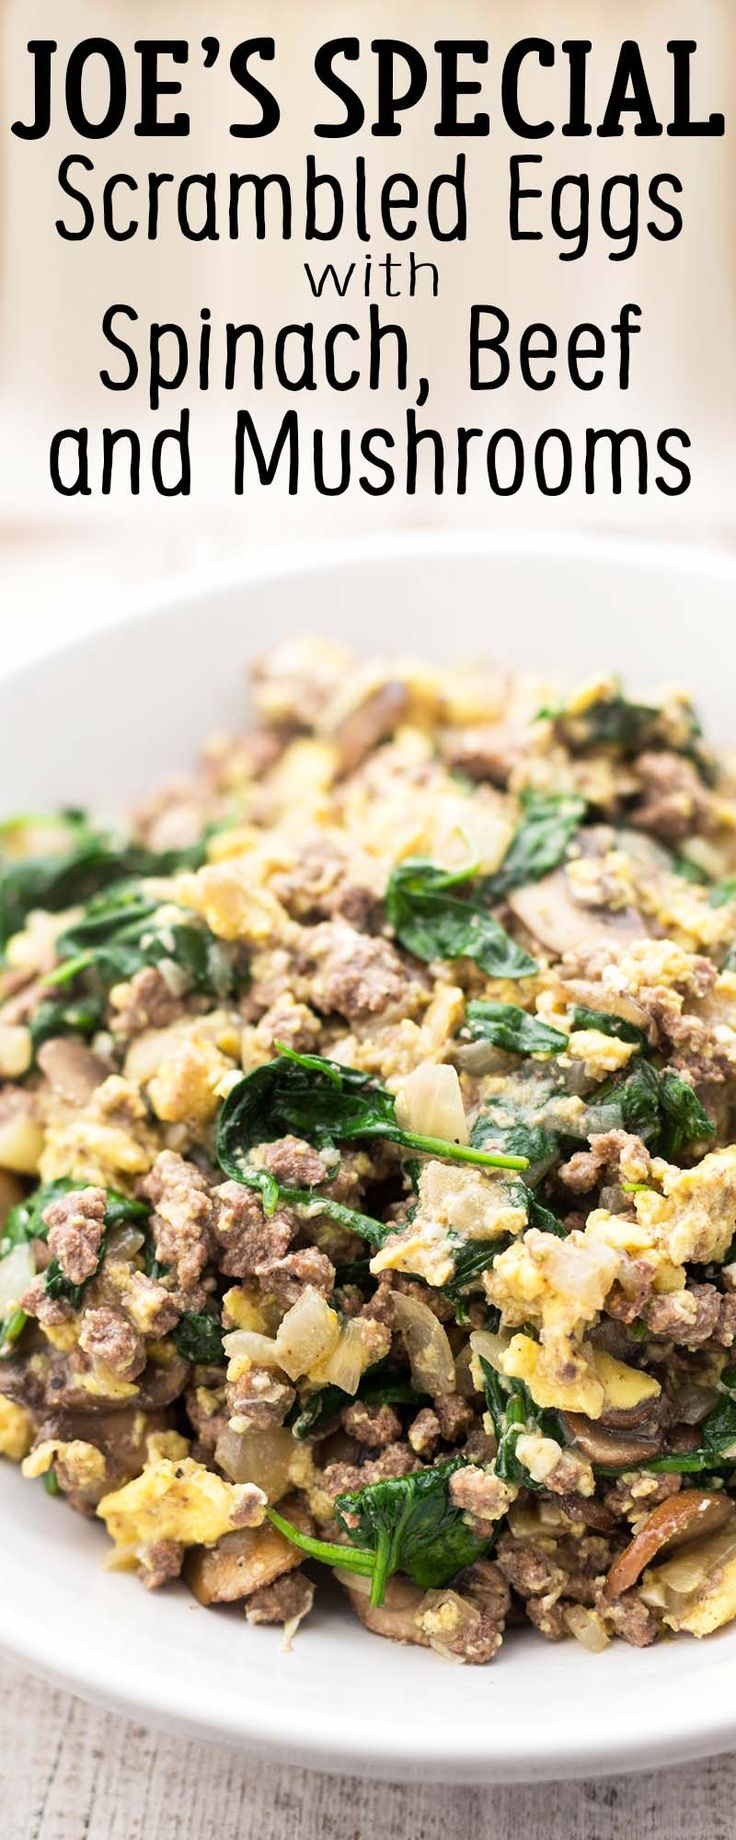 Joe's Special! Classic diner meal with scrambled eggs, spinach, beef, onions, garlic, and mushrooms. 30 minutes.